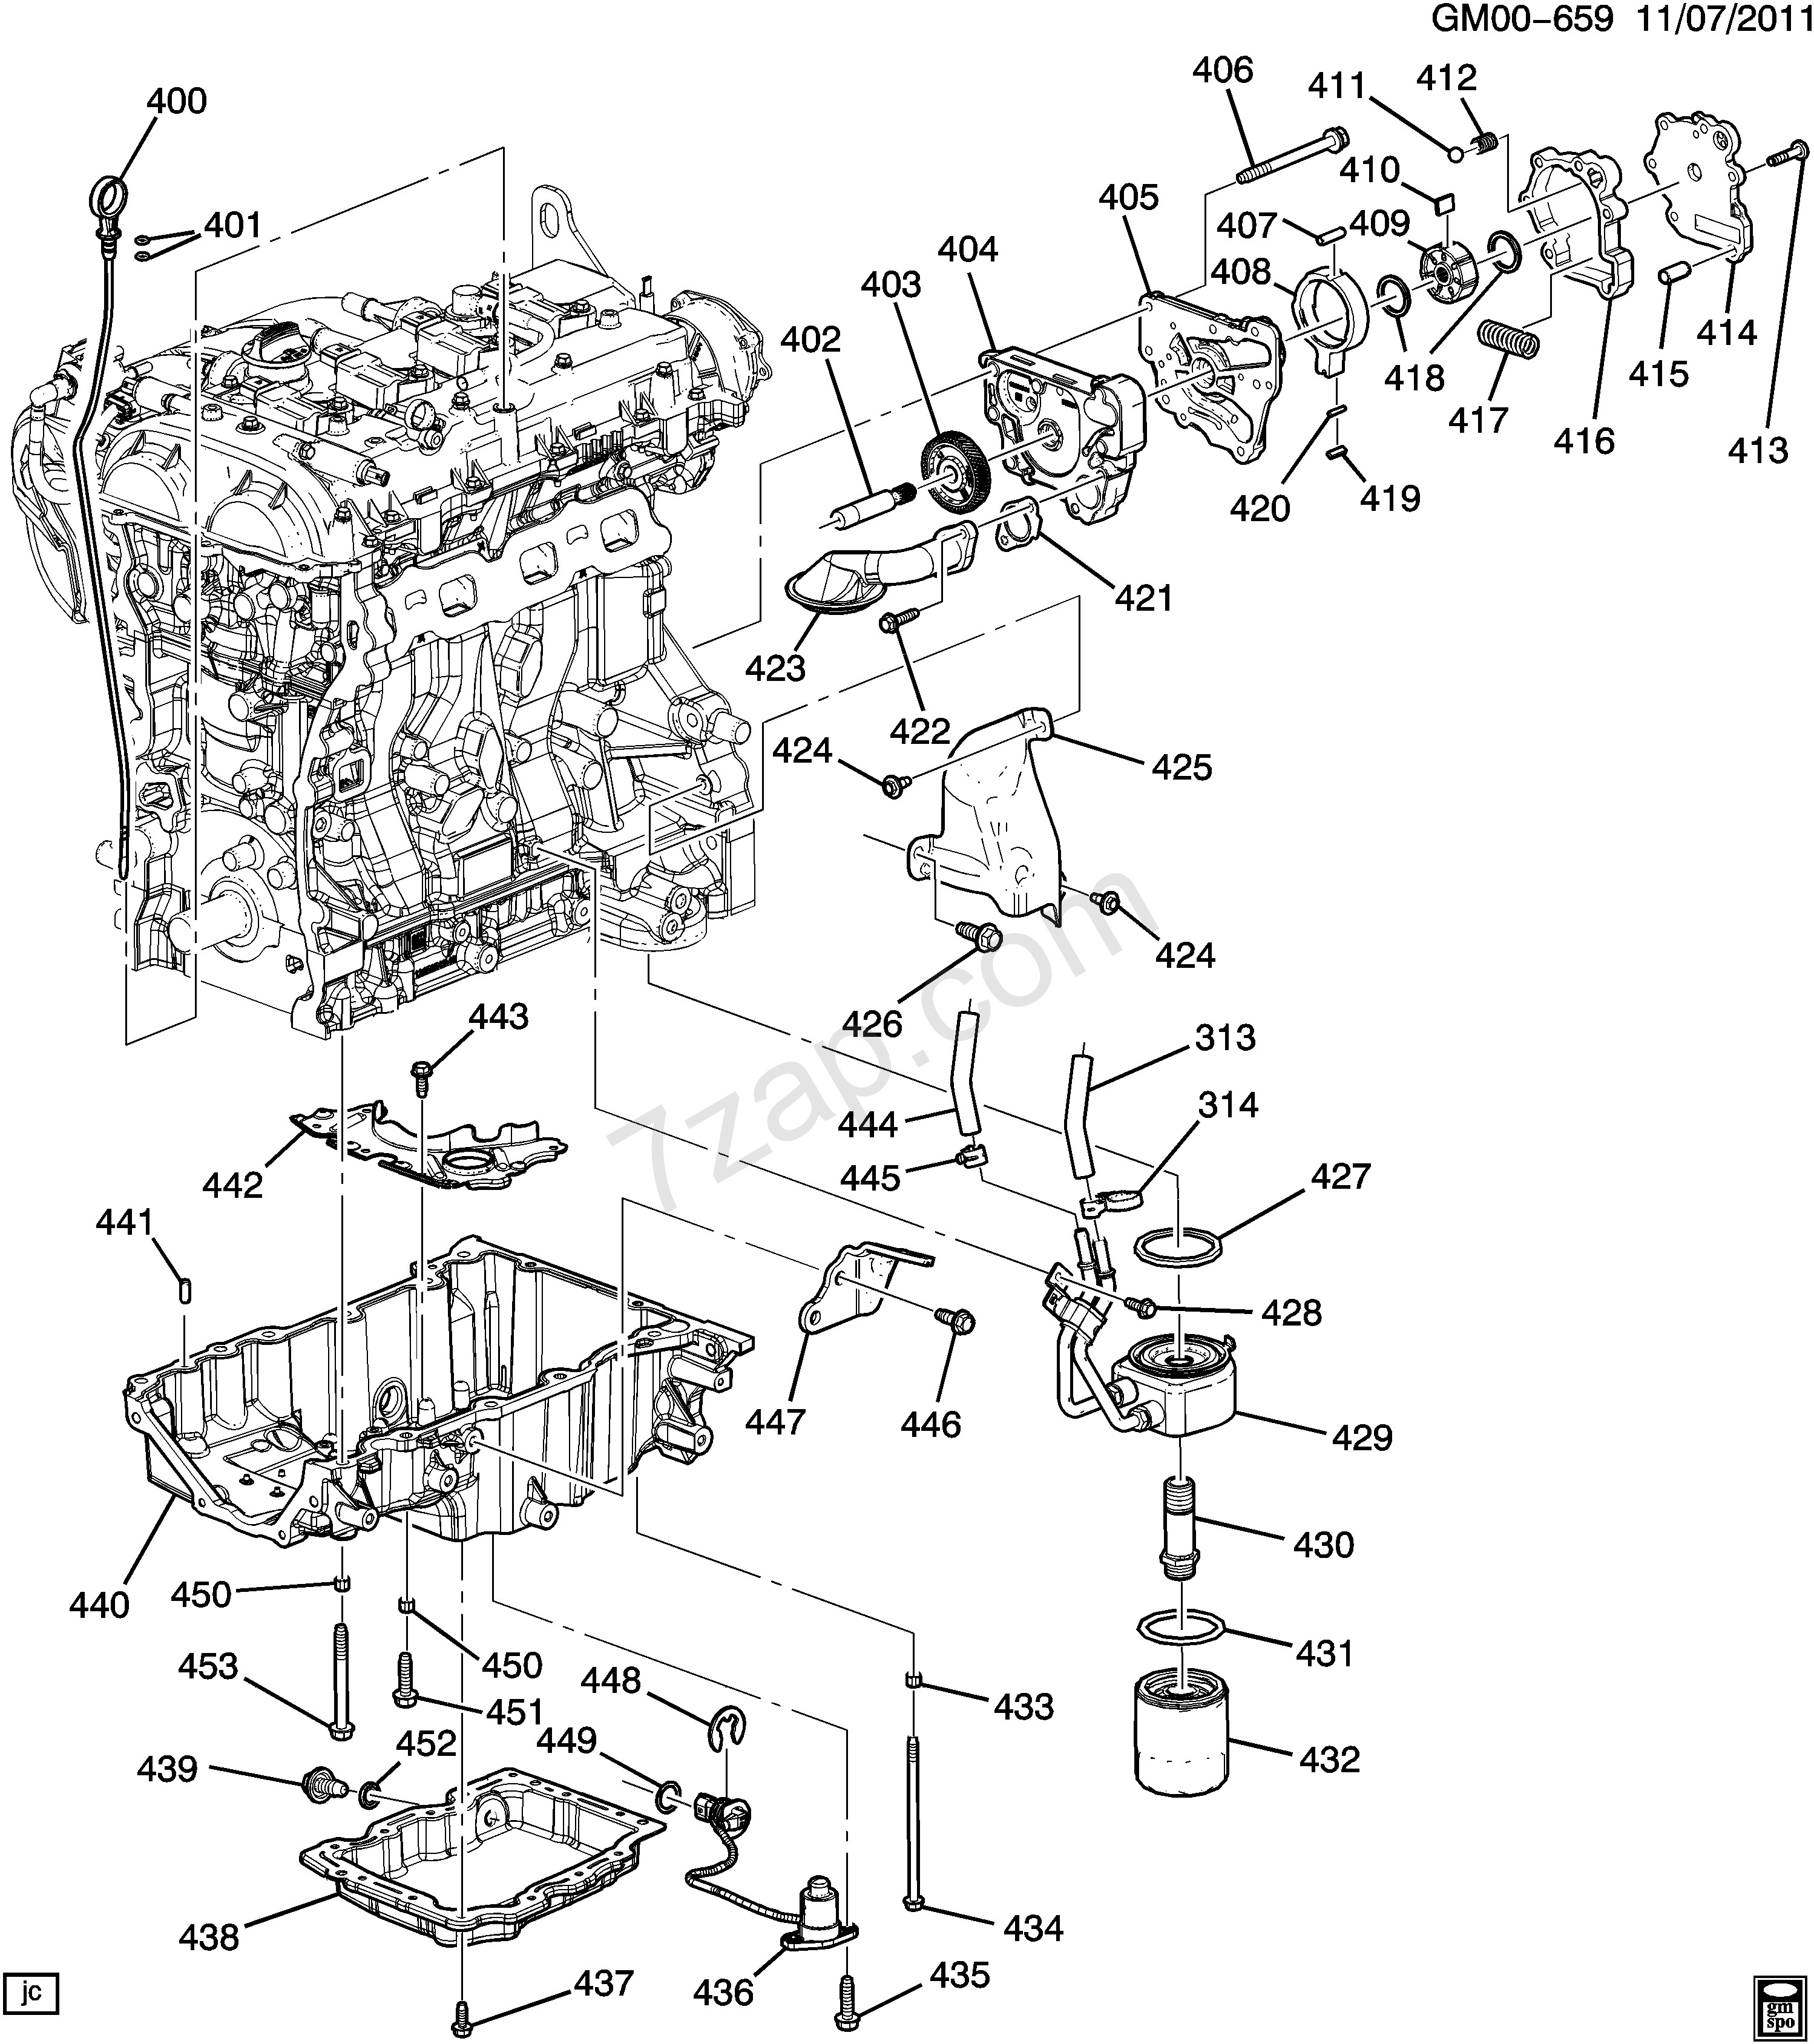 Chevy Cobalt Fuel Pump Wiring Diagram